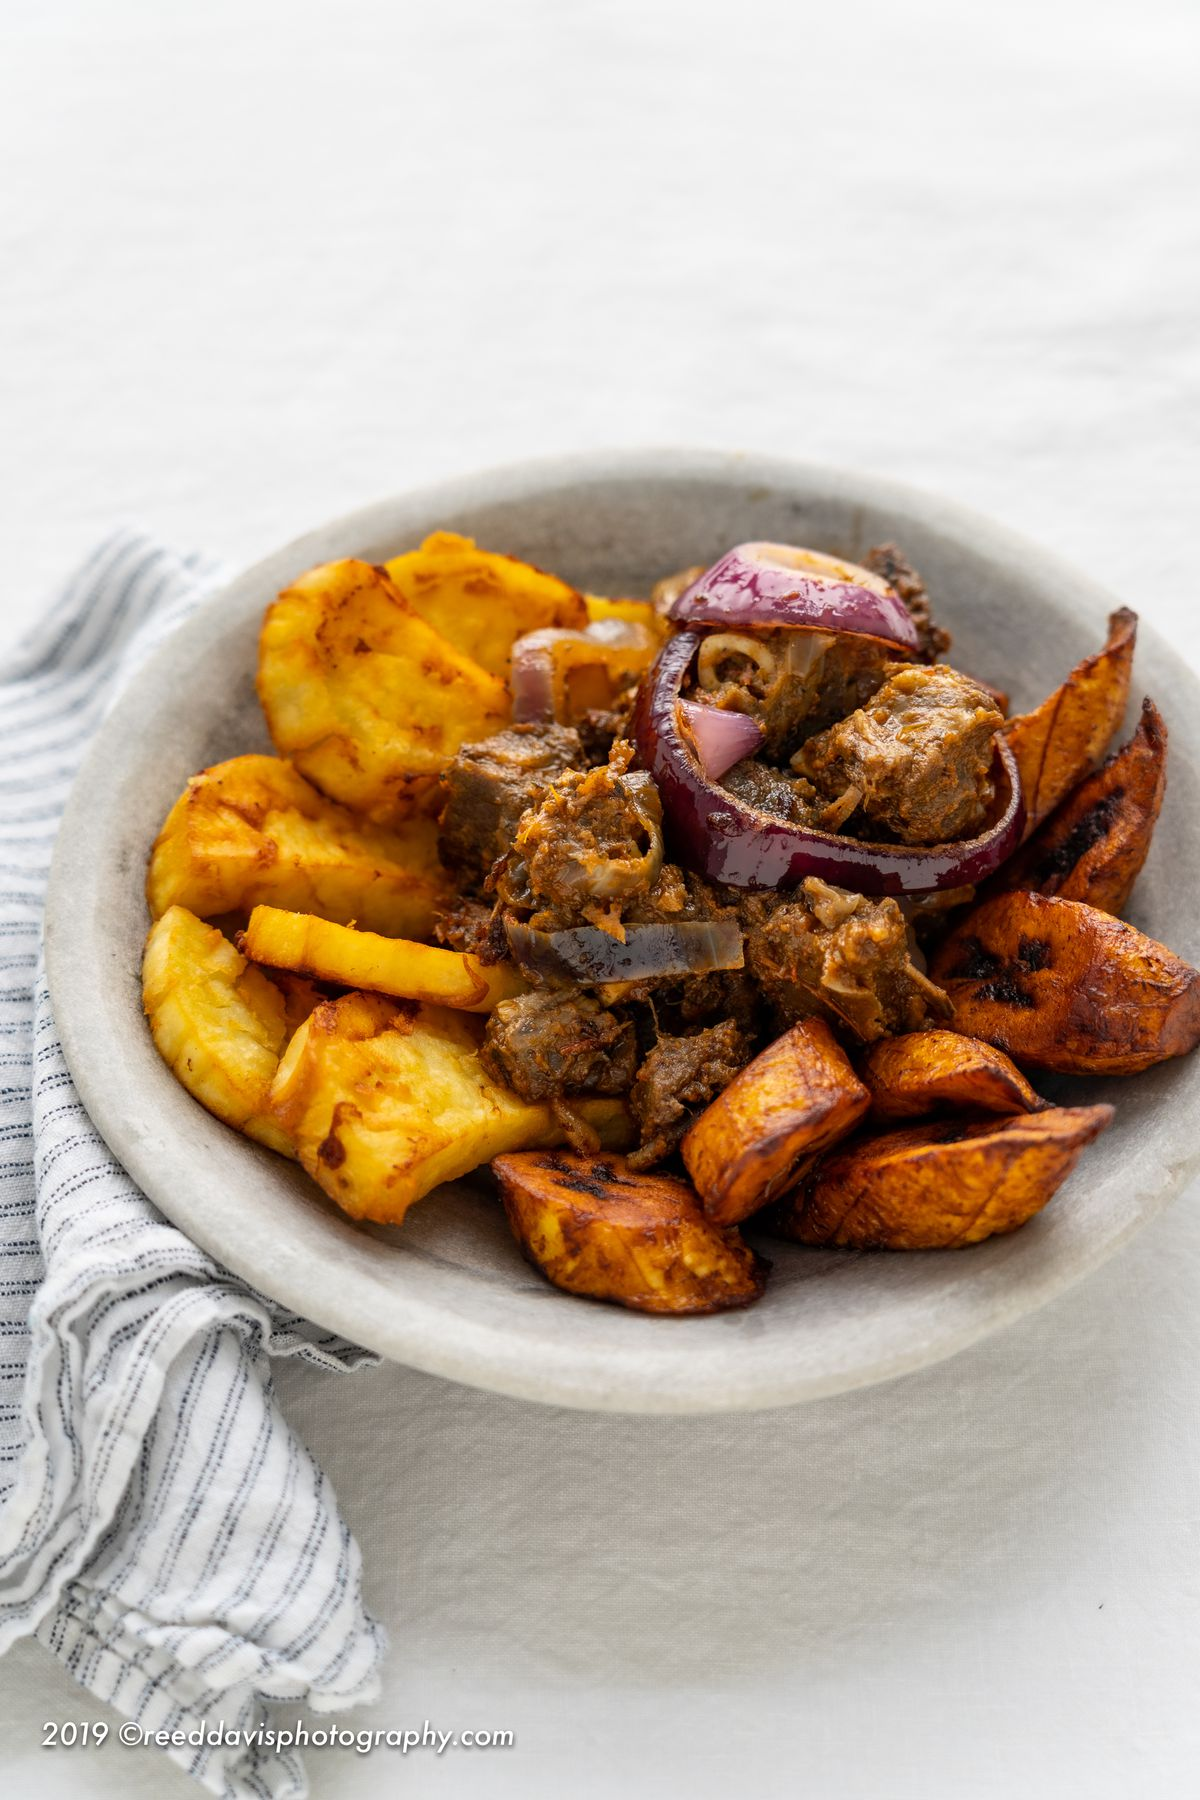 Asun with plantains and sweet potatoes from Eko Kitchen